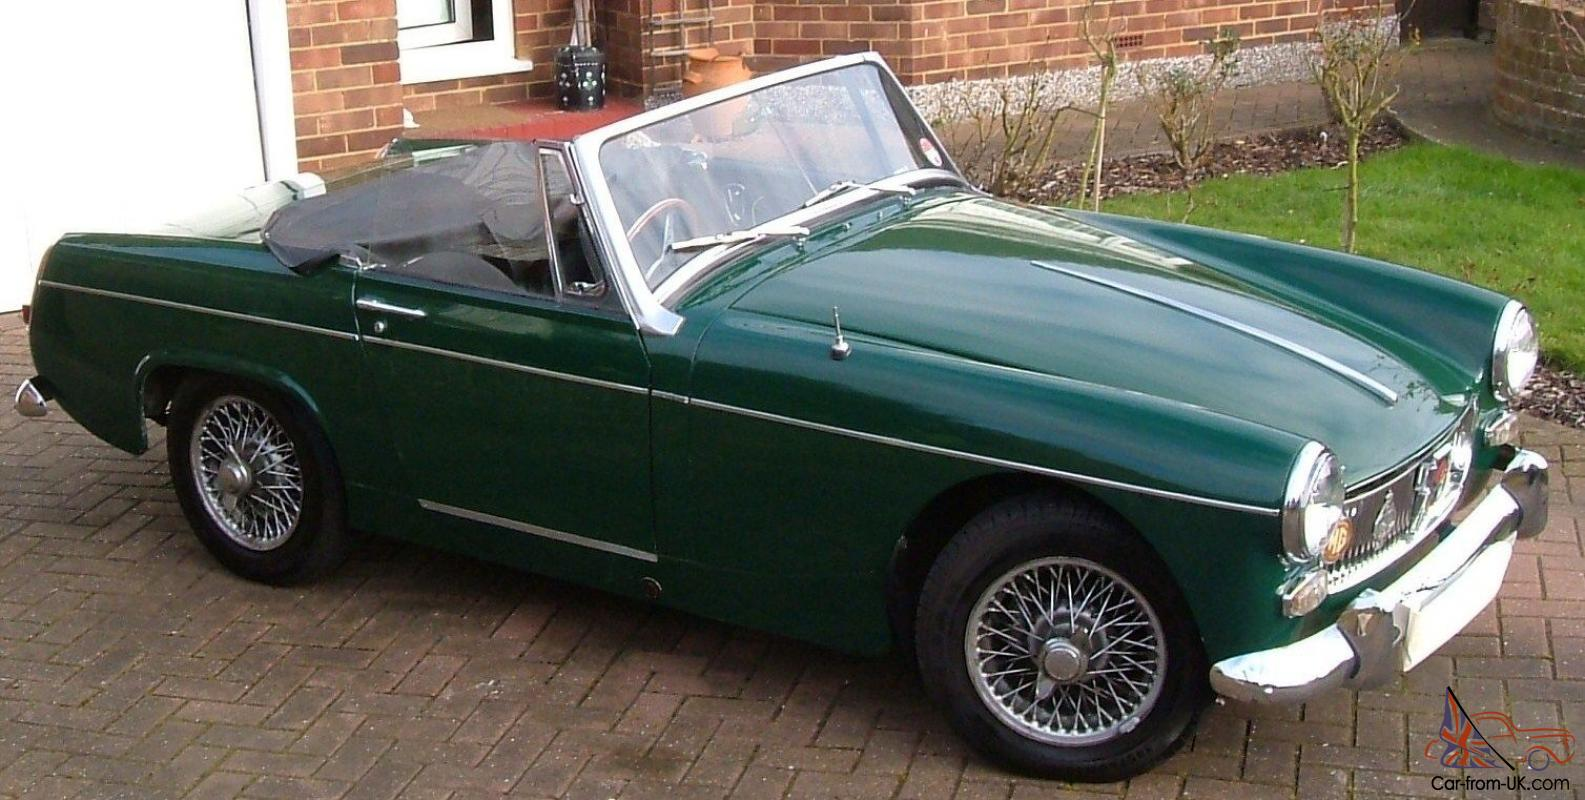 Racing Green Engineering Cars For Sale